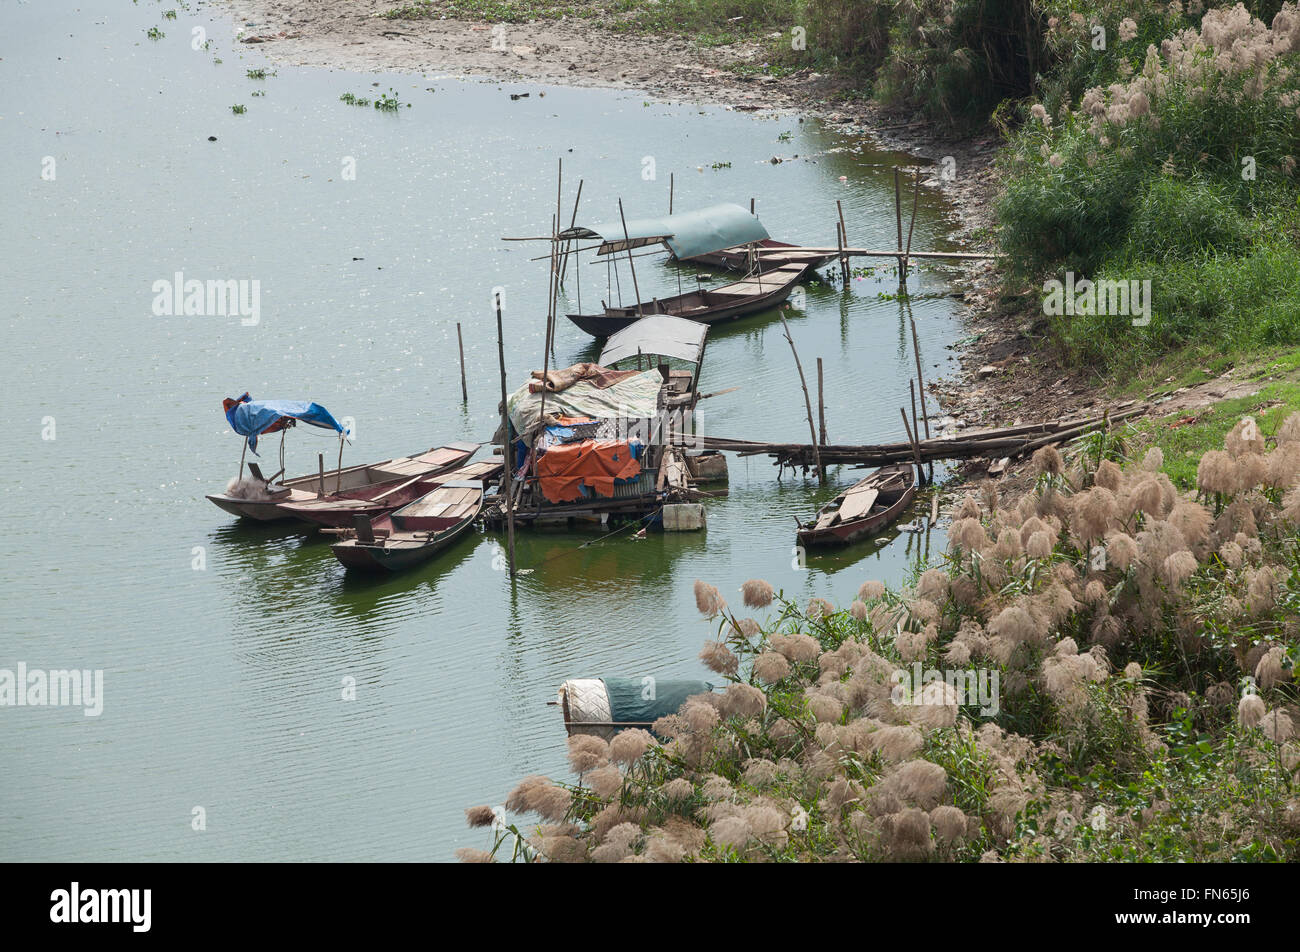 Poor floating village, slumdog are on the bank of Red river, only 2km from the center of Hanoi capital. - Stock Image